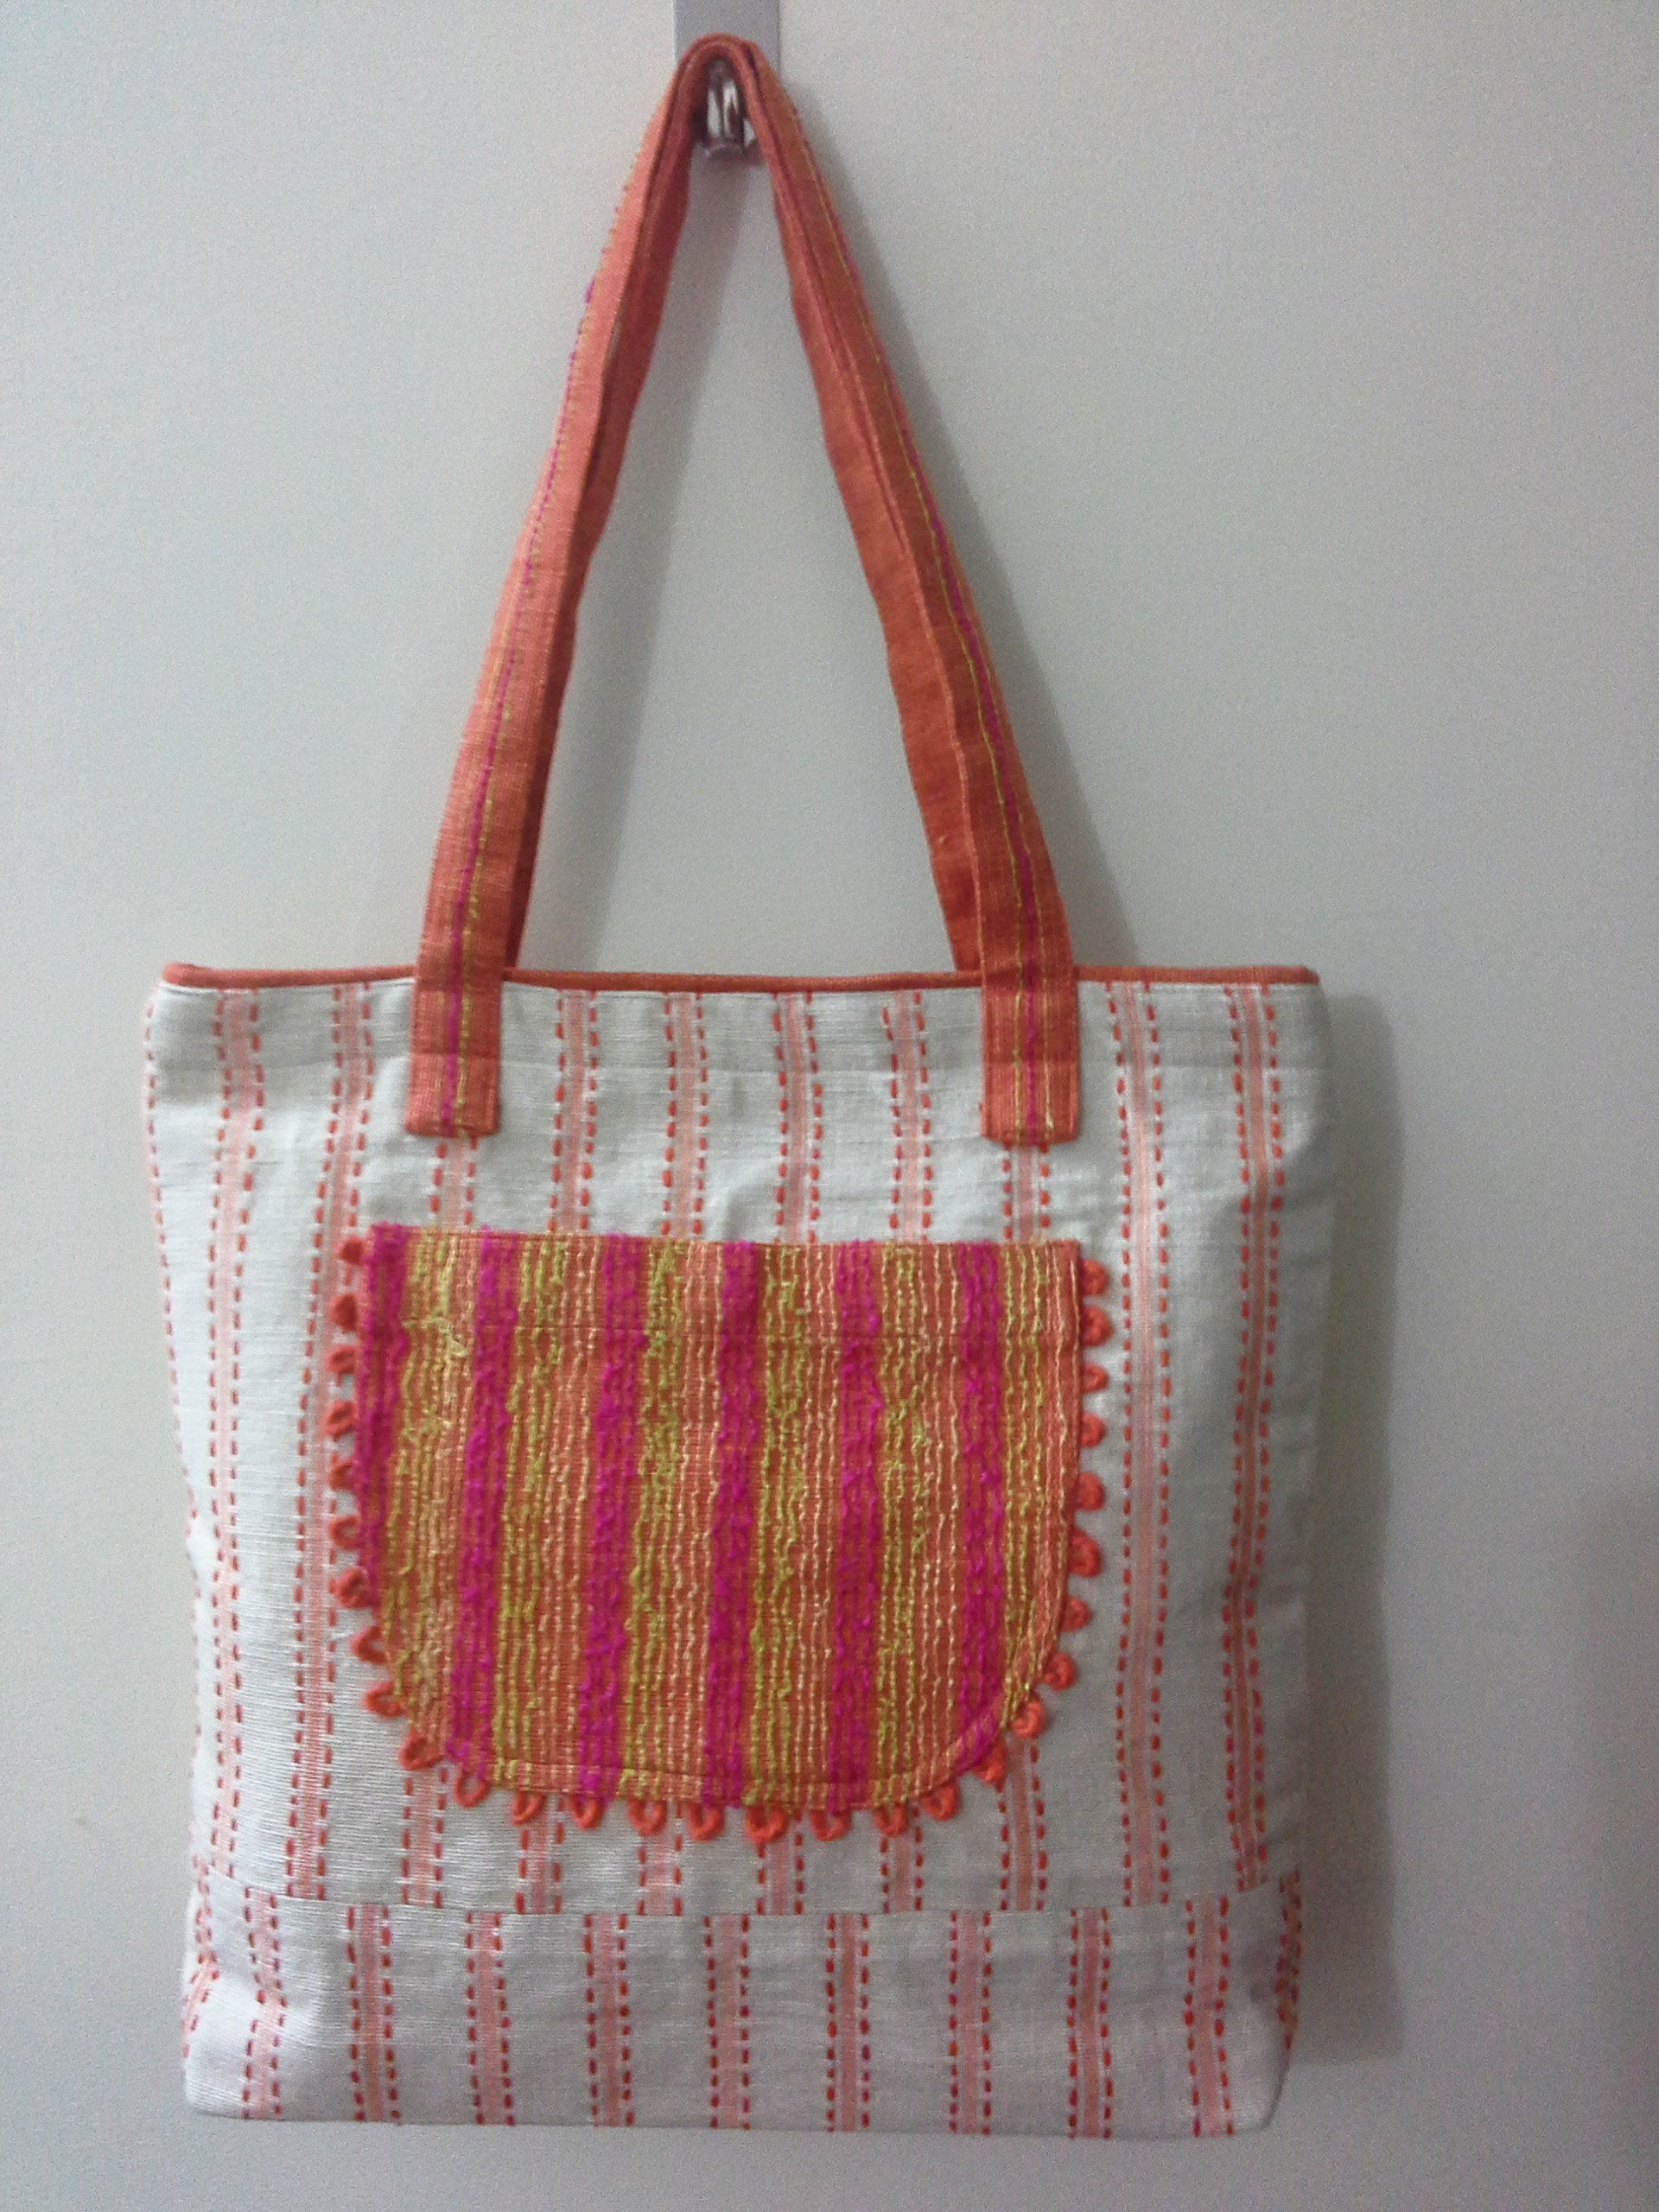 Panigha India Handmade Top Handle Tote Bag/Carry-All HandBag in Stripes made of Cotton Fabric for every day use. - handmade-bags